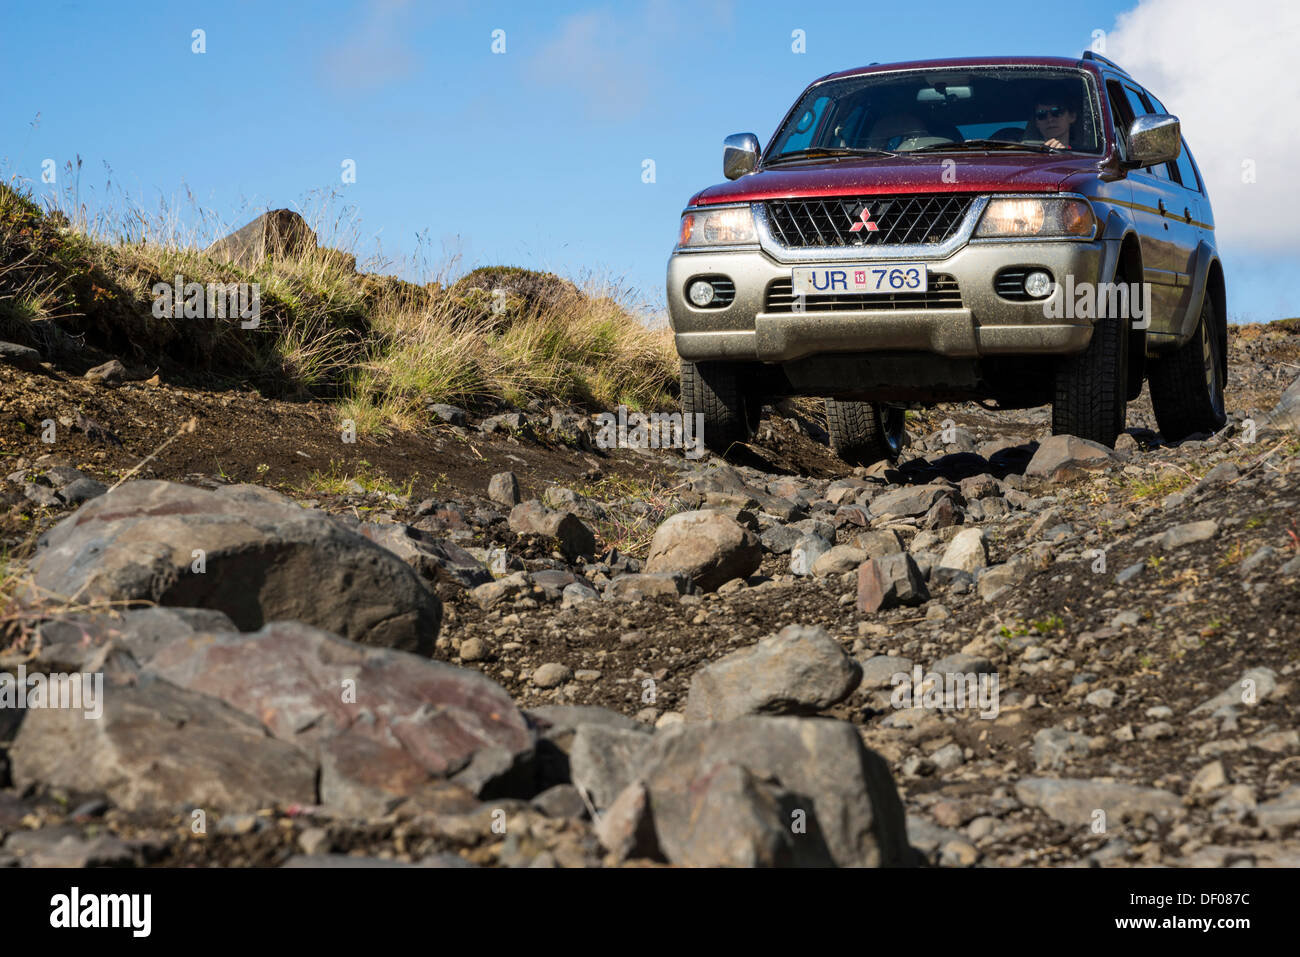 Jeep or SUV on upland dirt road, highlands, Iceland, Europe - Stock Image